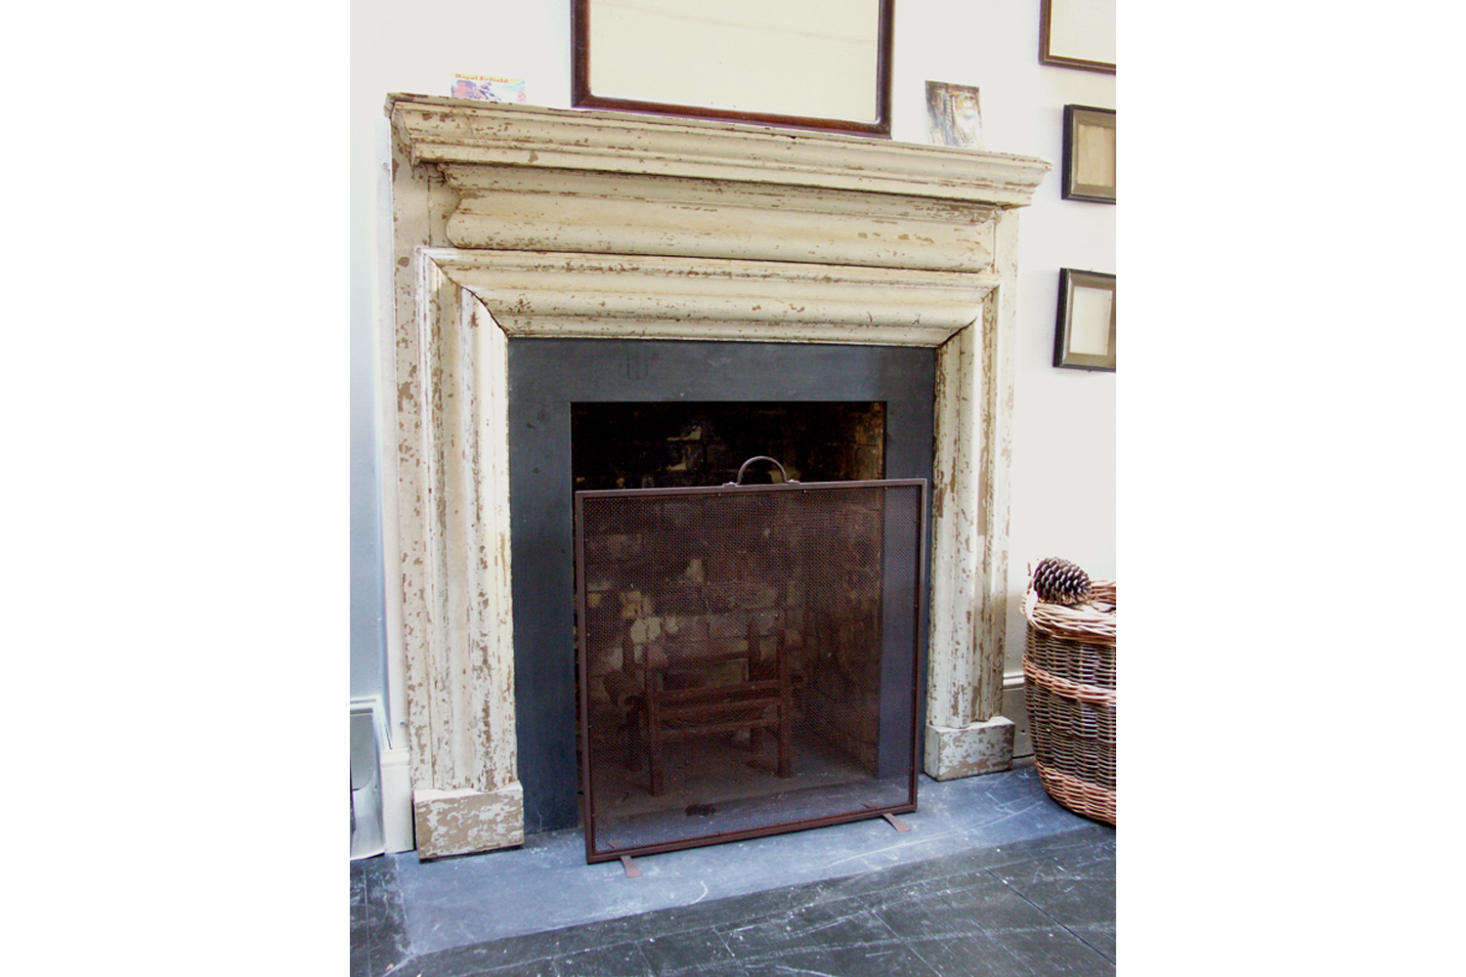 The fireplace mantel is the Howe Bolection Fire Surround, n English th century style made inScandinavian Redwood pine.Contact for price and ordering information.